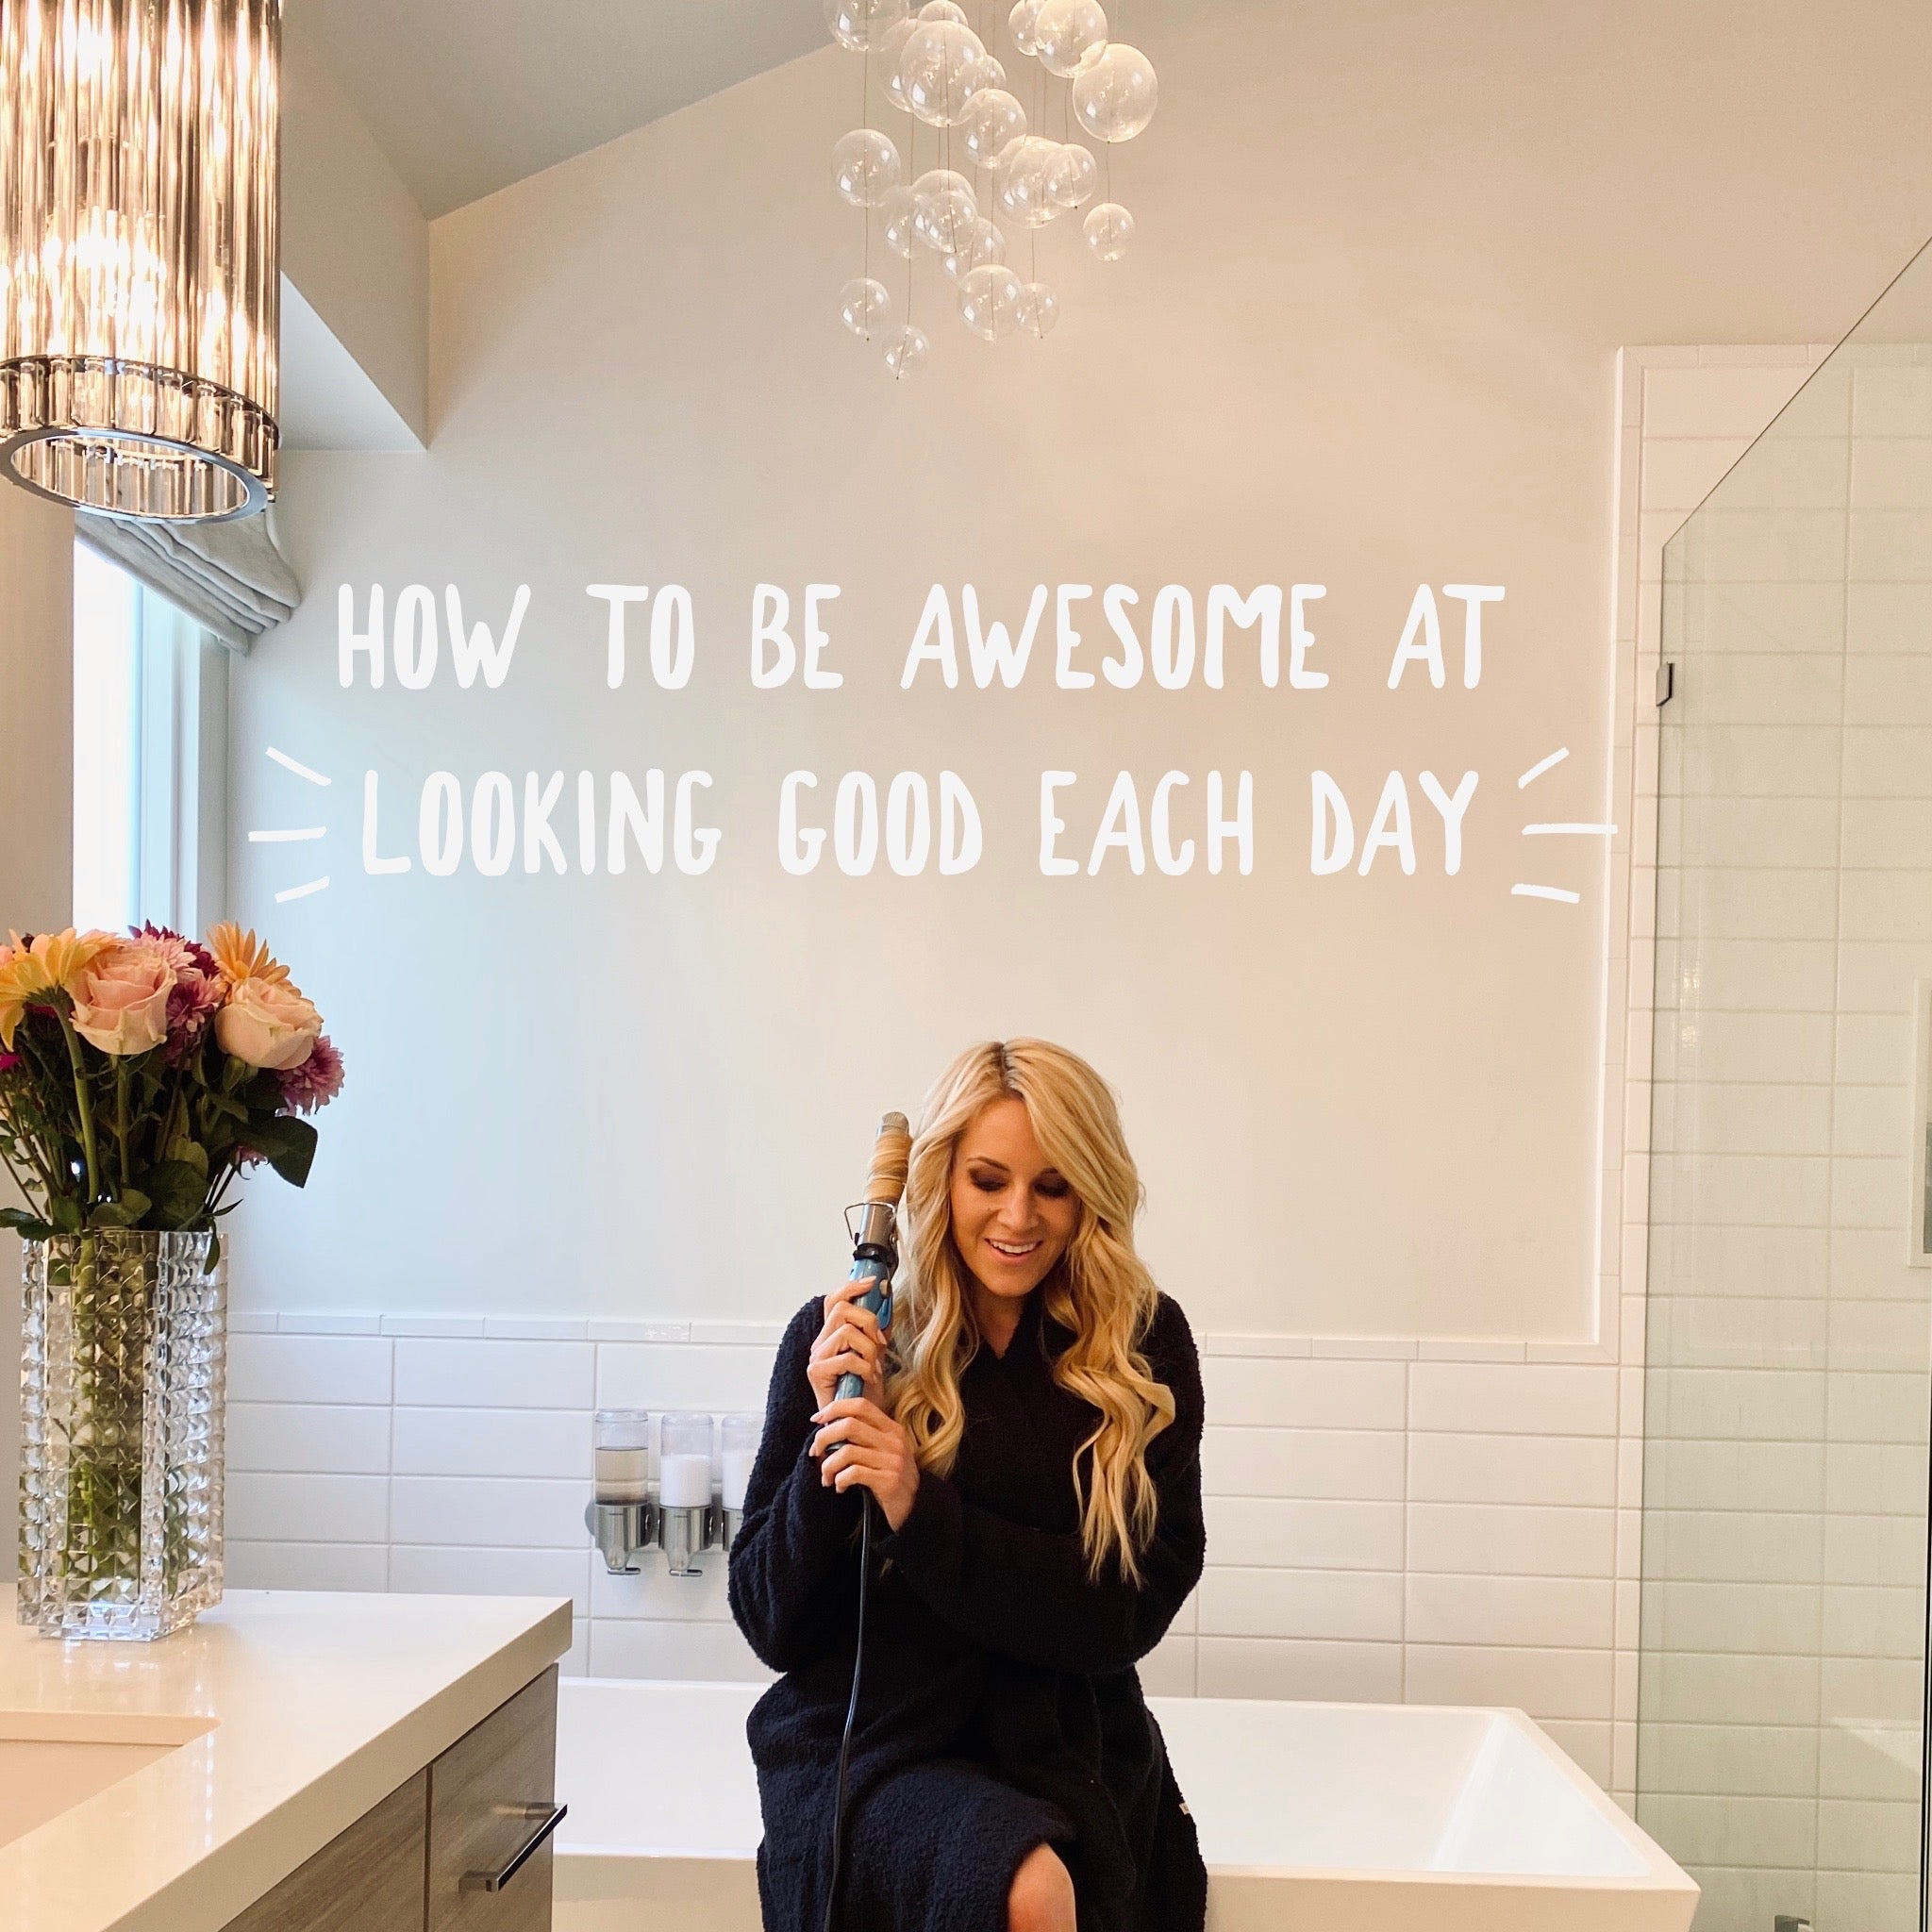 BEST OF 2020: How To Be Awesome At Looking Good Each Day